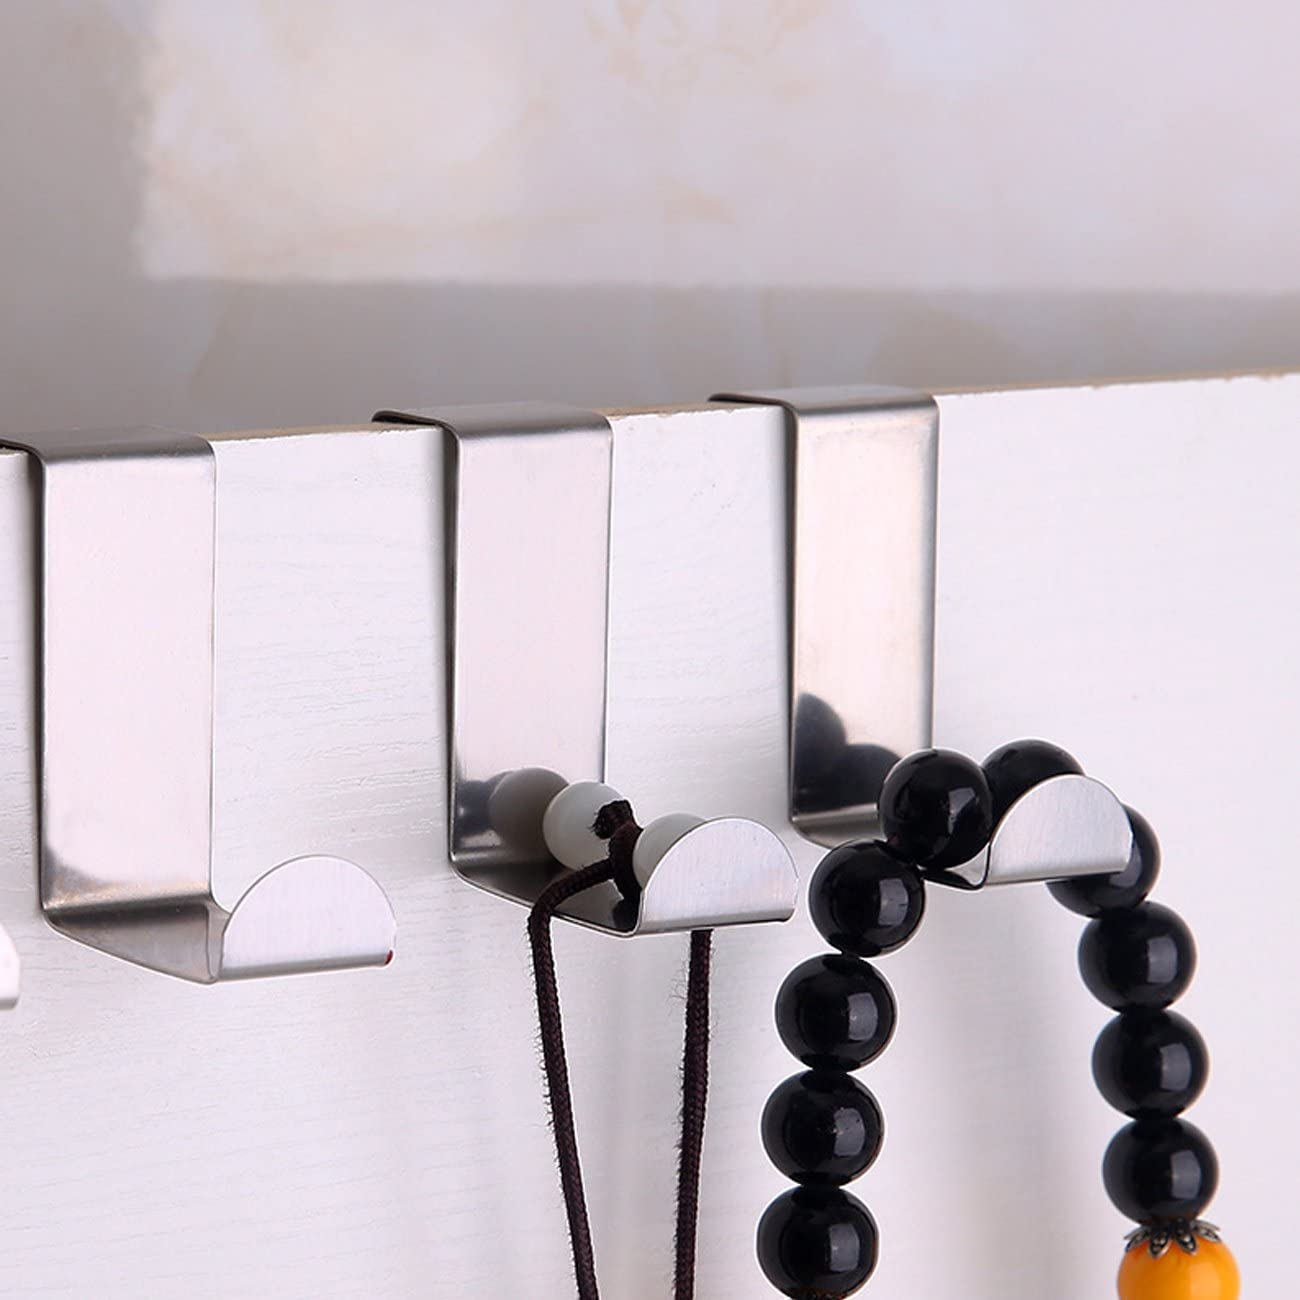 Silver x10 TinaWood 10PCS Stainless Steel Z shape Cabinet Clothes Hanger Over Door Hooks Kitchen Cabinet Unit Draw Cloth Towel Bag Hanger